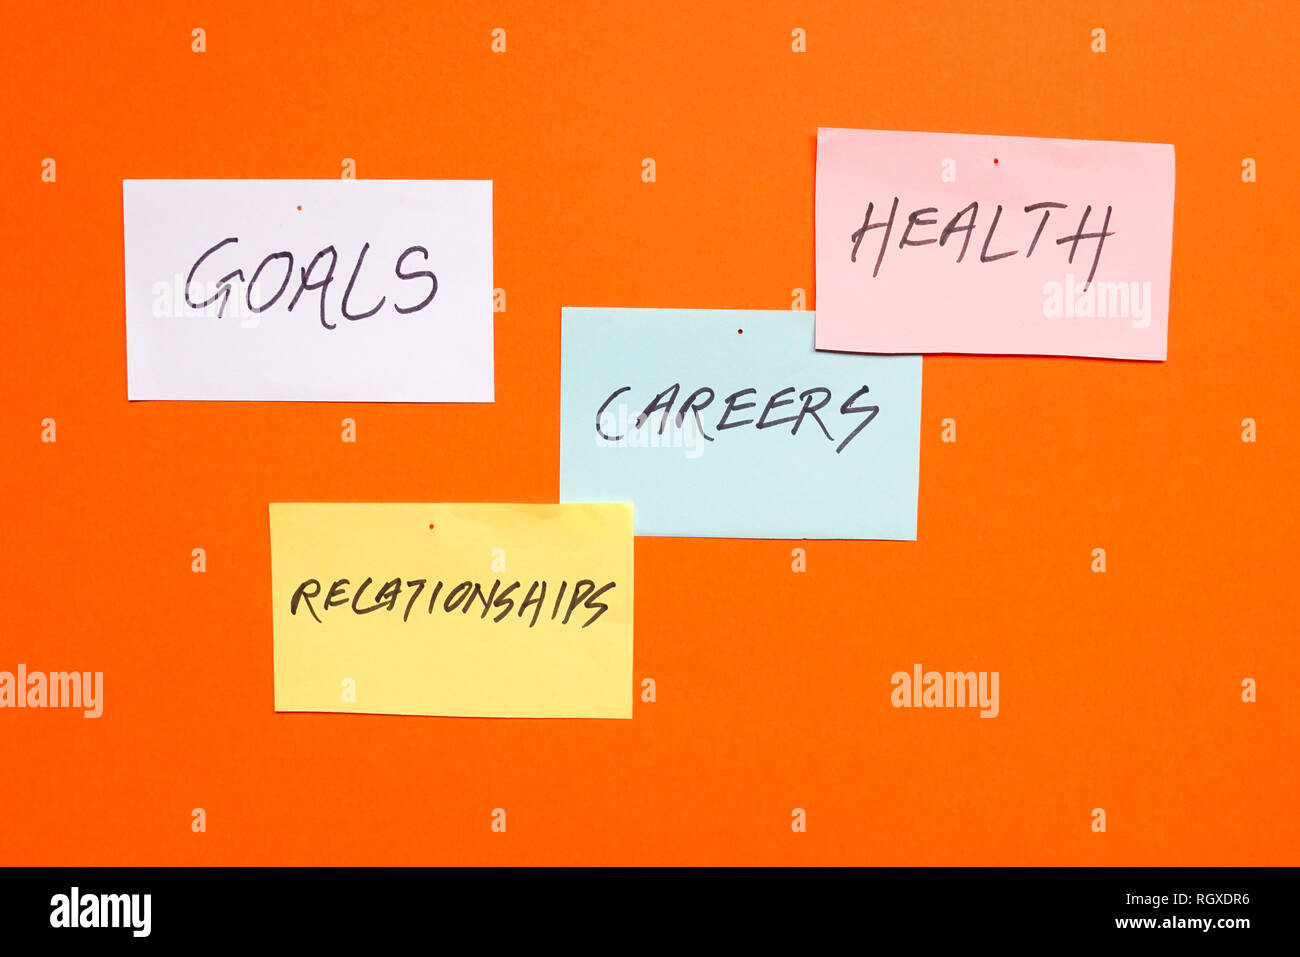 Goals in careers, health and relationships written on colored papers - Stock Image